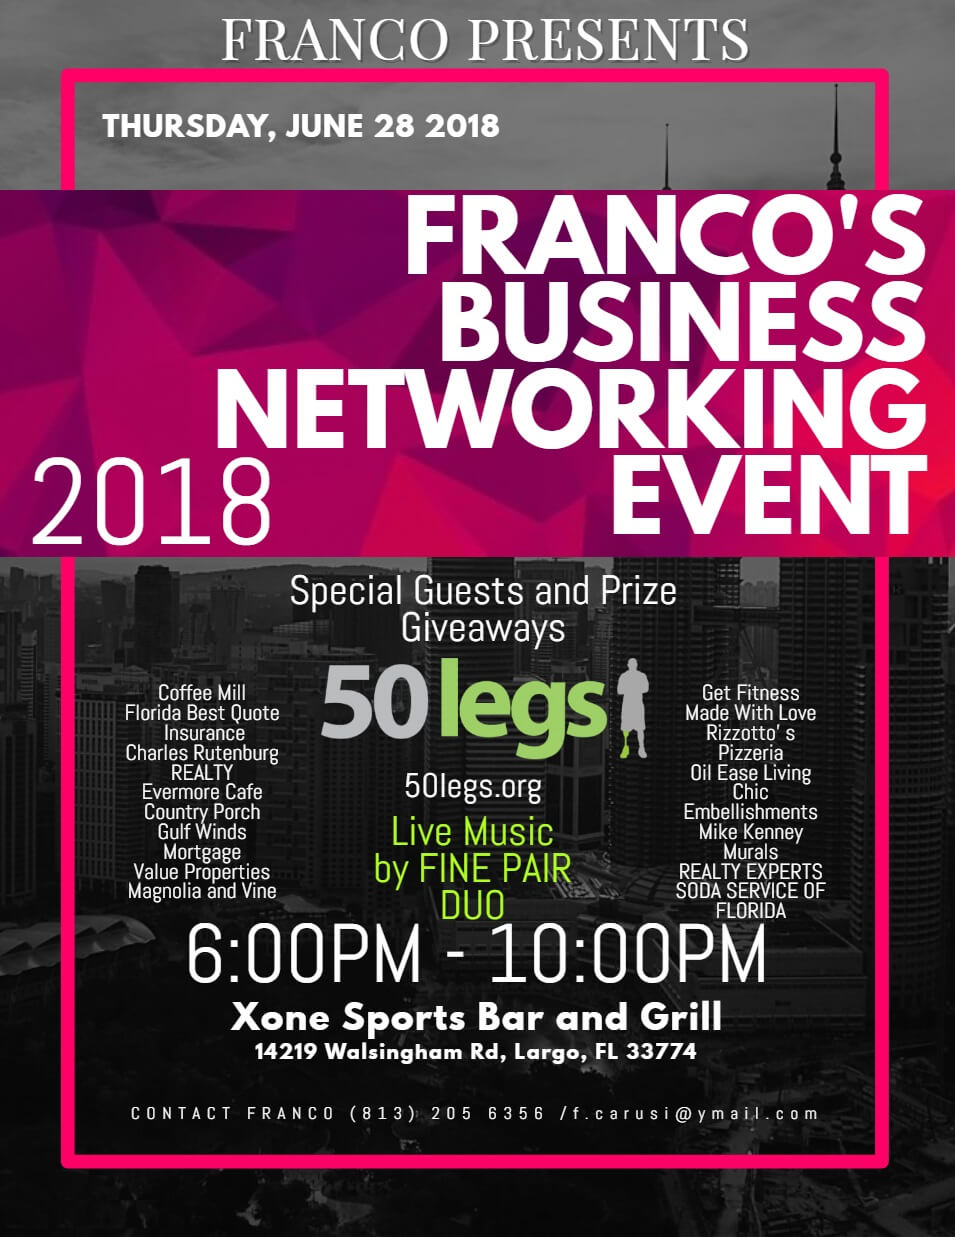 franco's marketing event